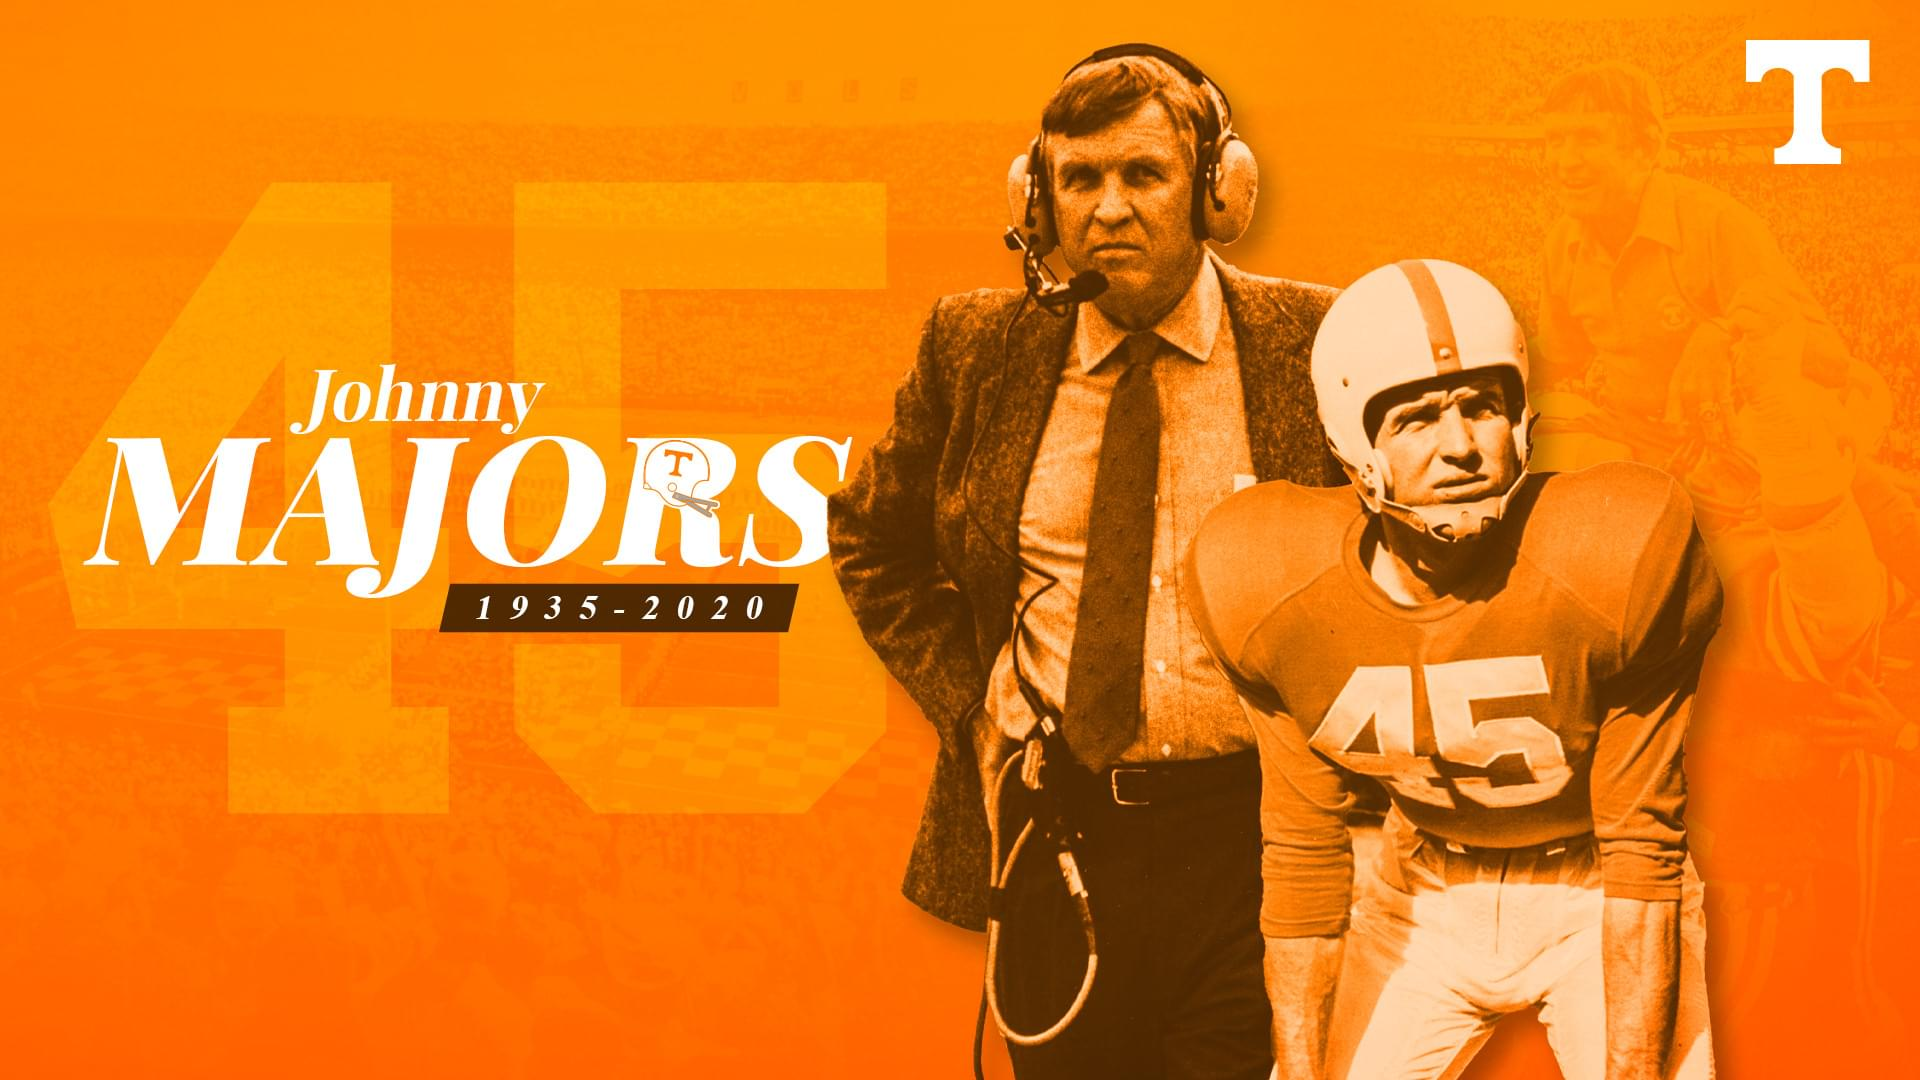 Tennessee Mourns the Loss of Johnny Majors